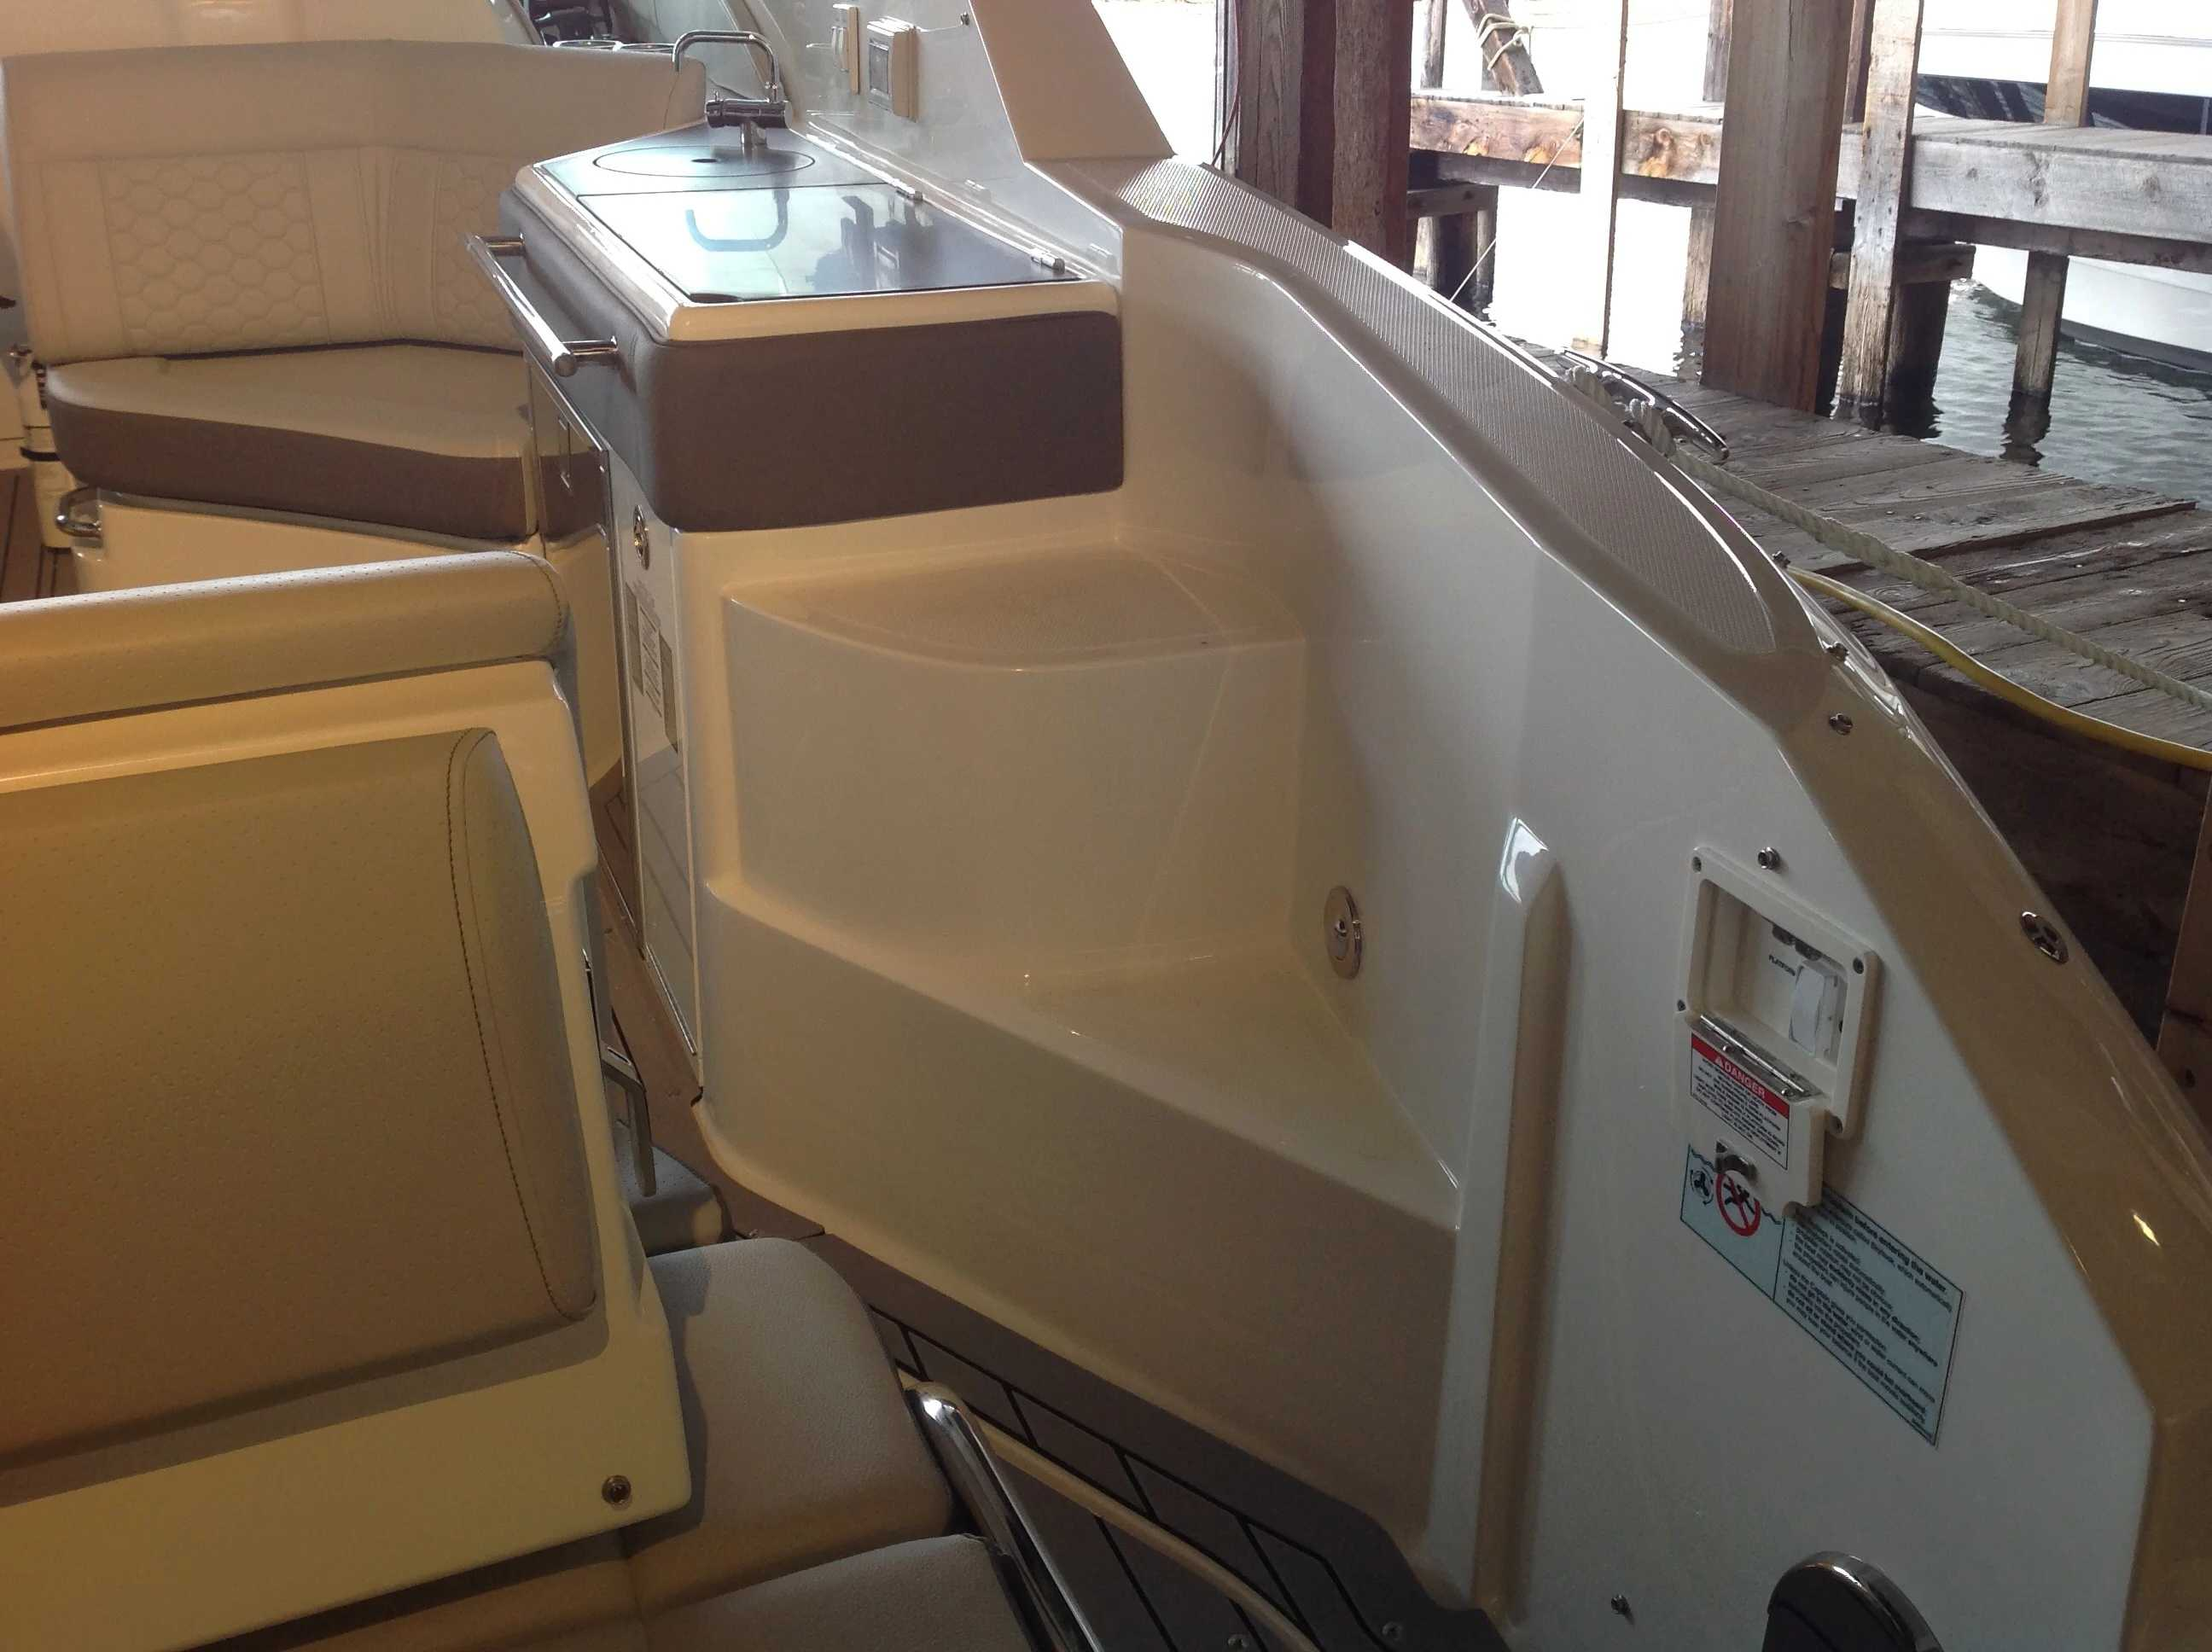 2021 Sea Ray boat for sale, model of the boat is 320 Sundancer & Image # 29 of 31